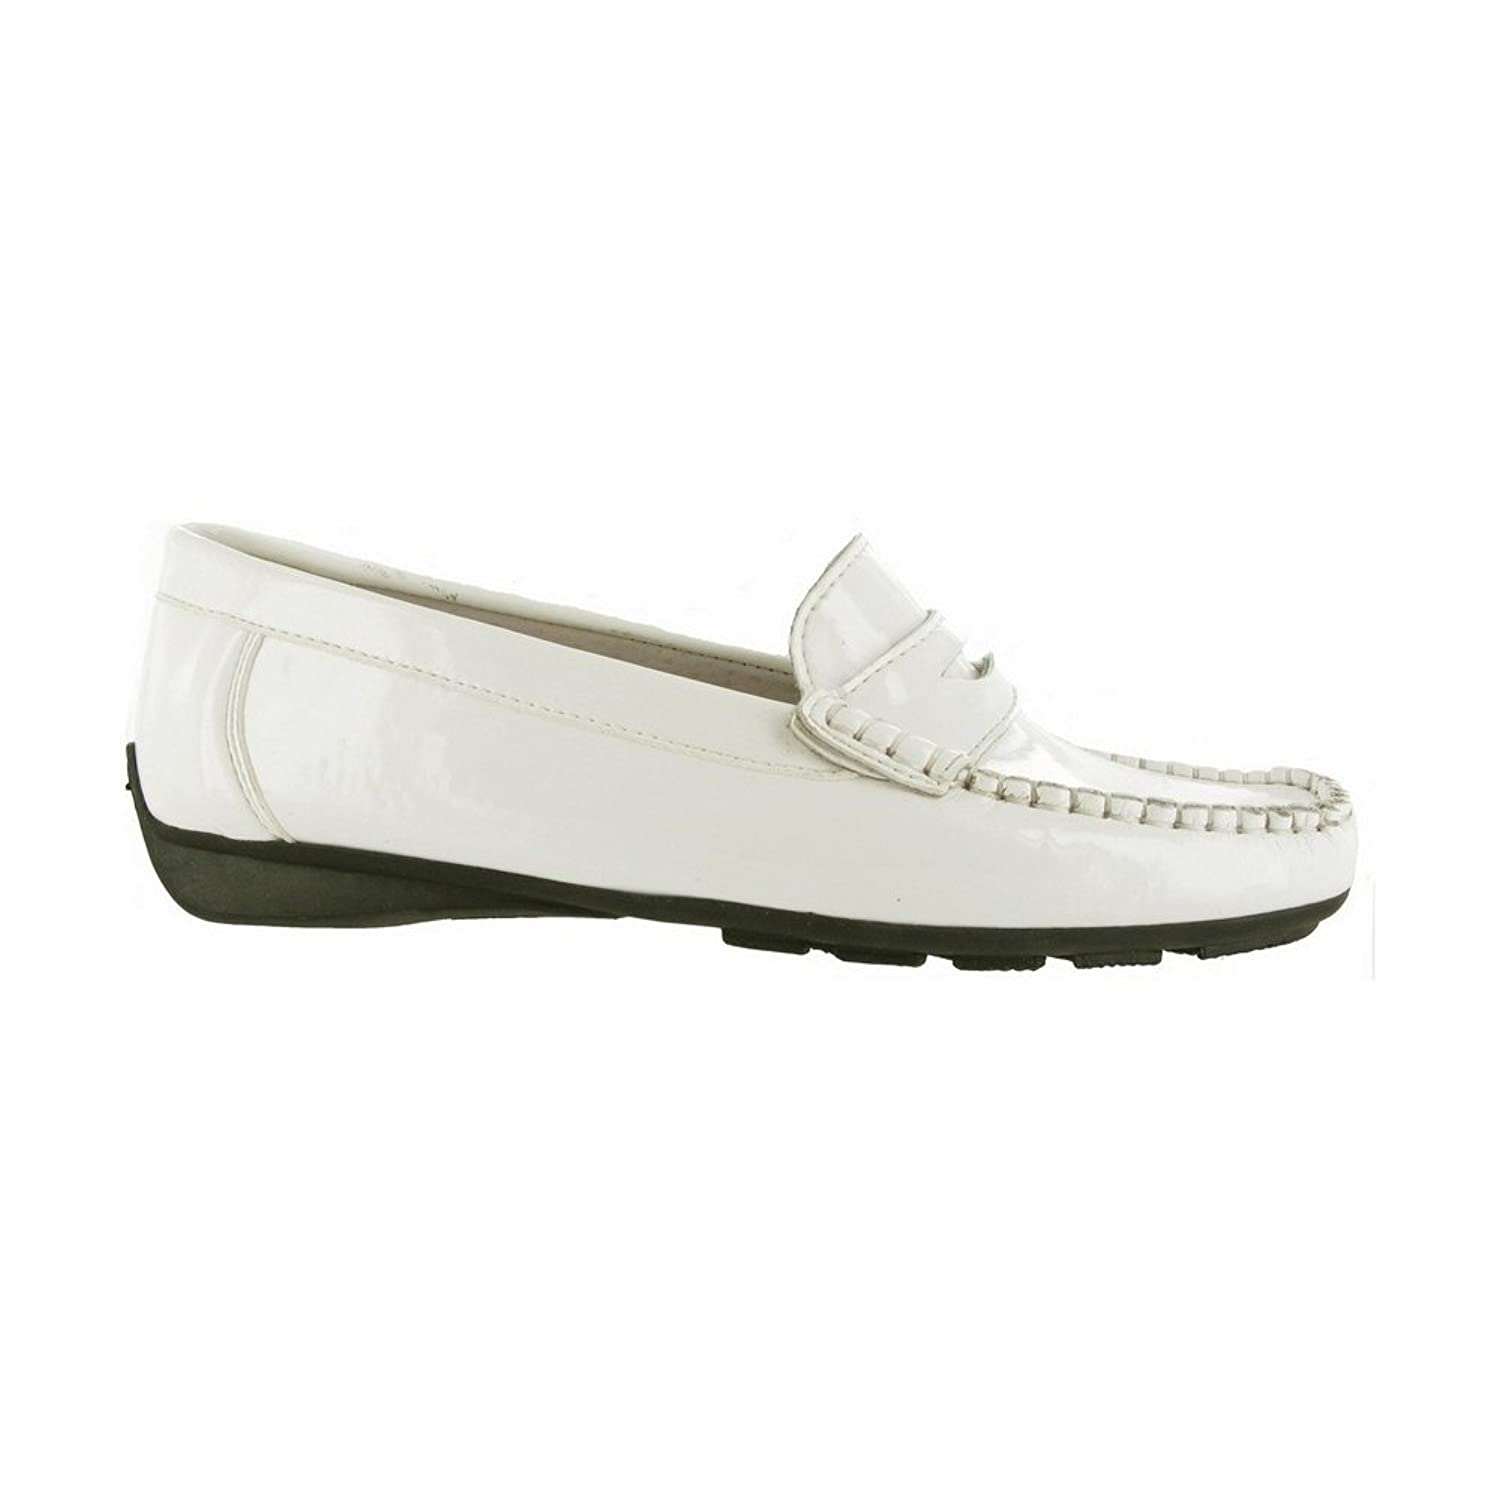 Riva Anaconda Moccasin / Womens Shoes (10.5 US) (White)